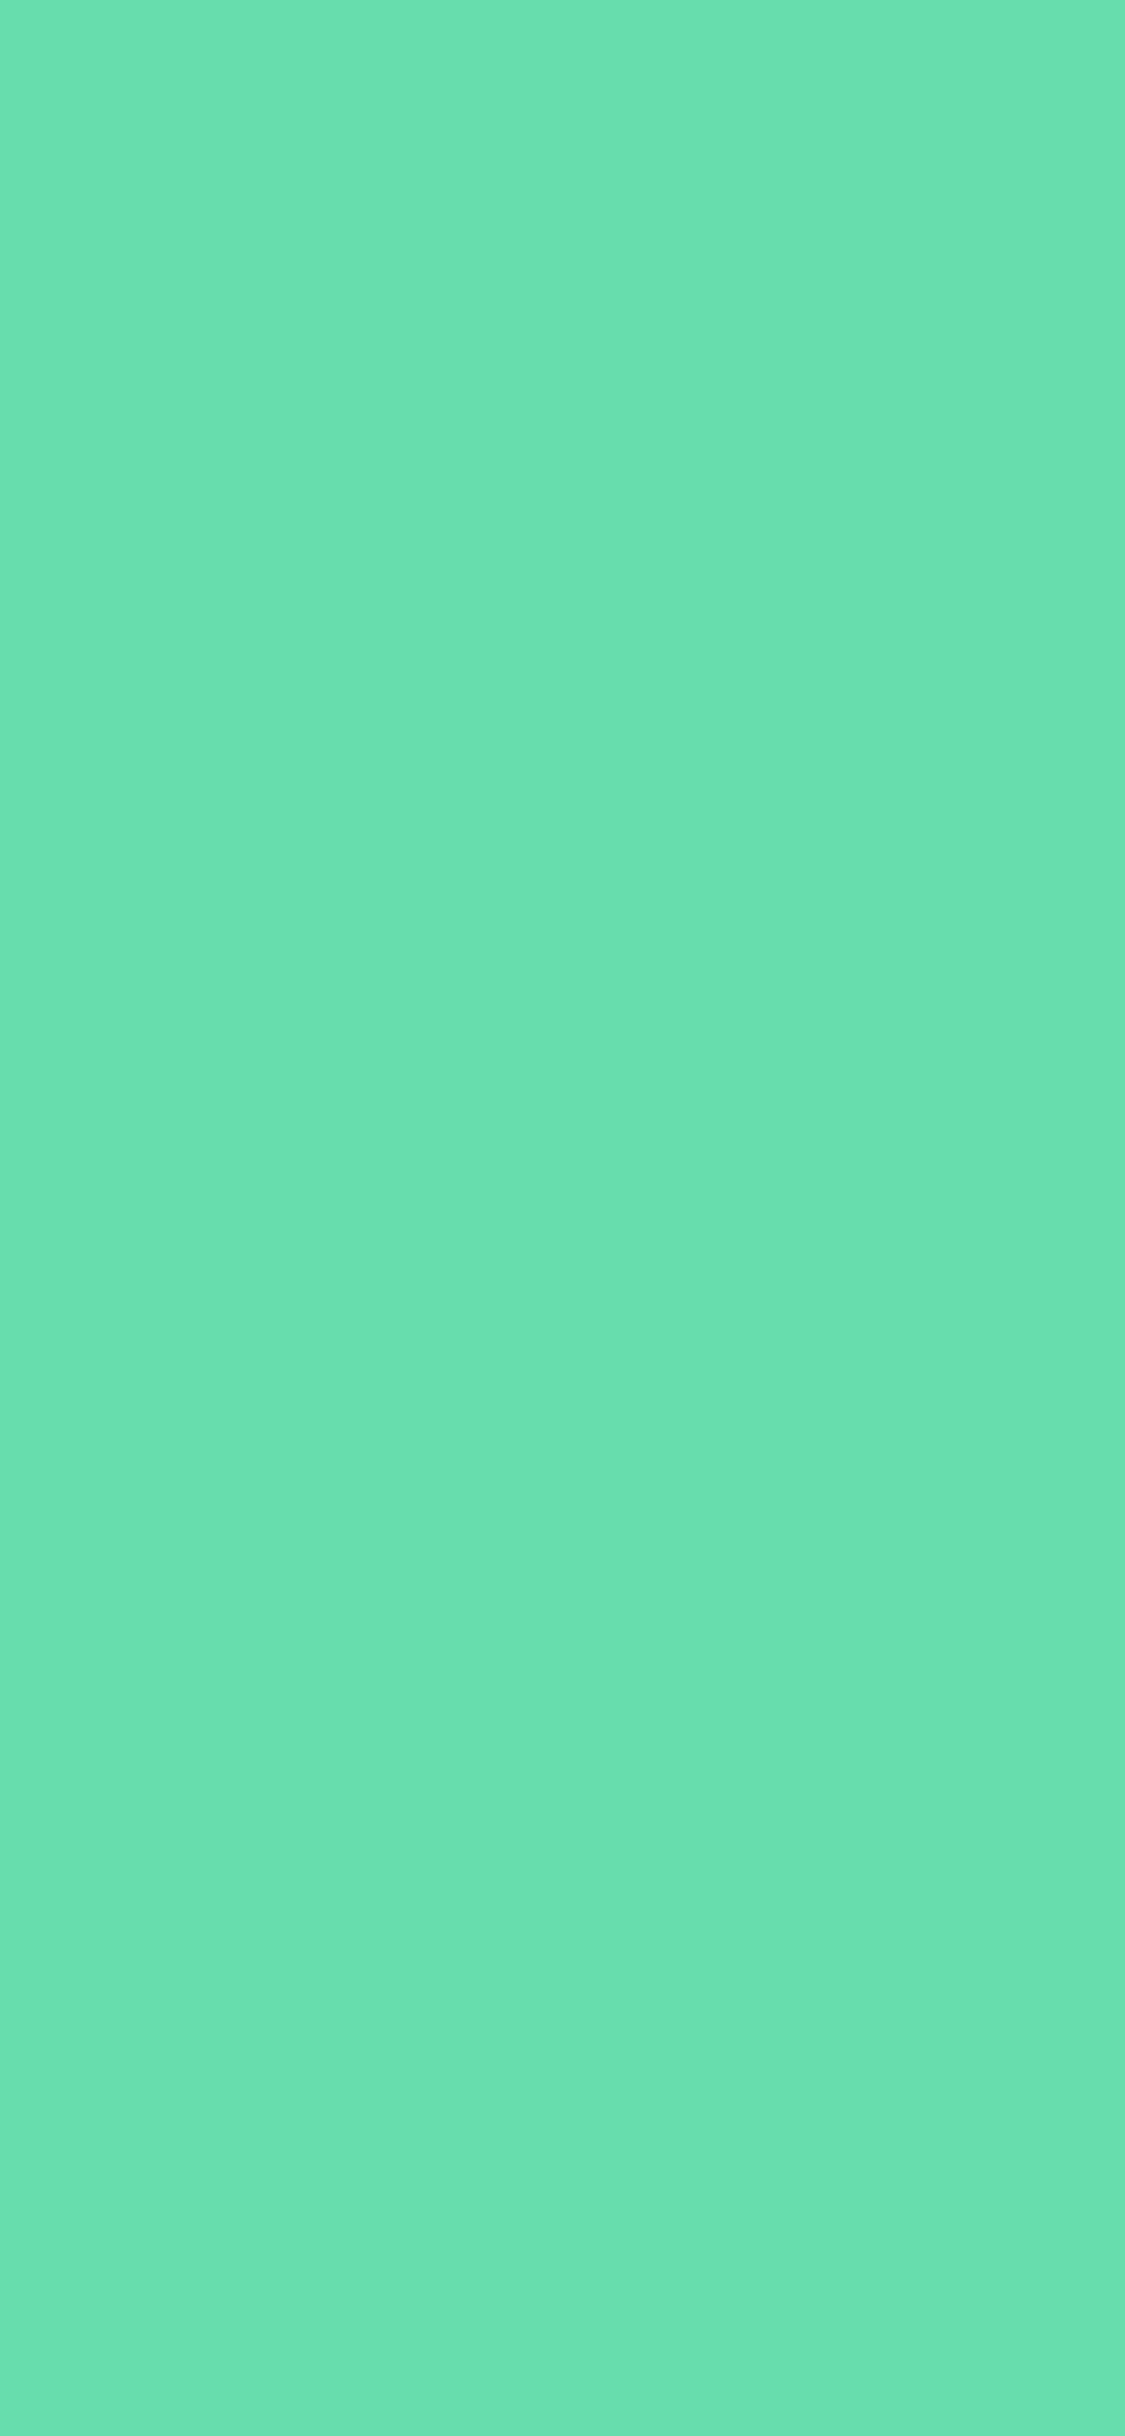 1125x2436 Medium Aquamarine Solid Color Background